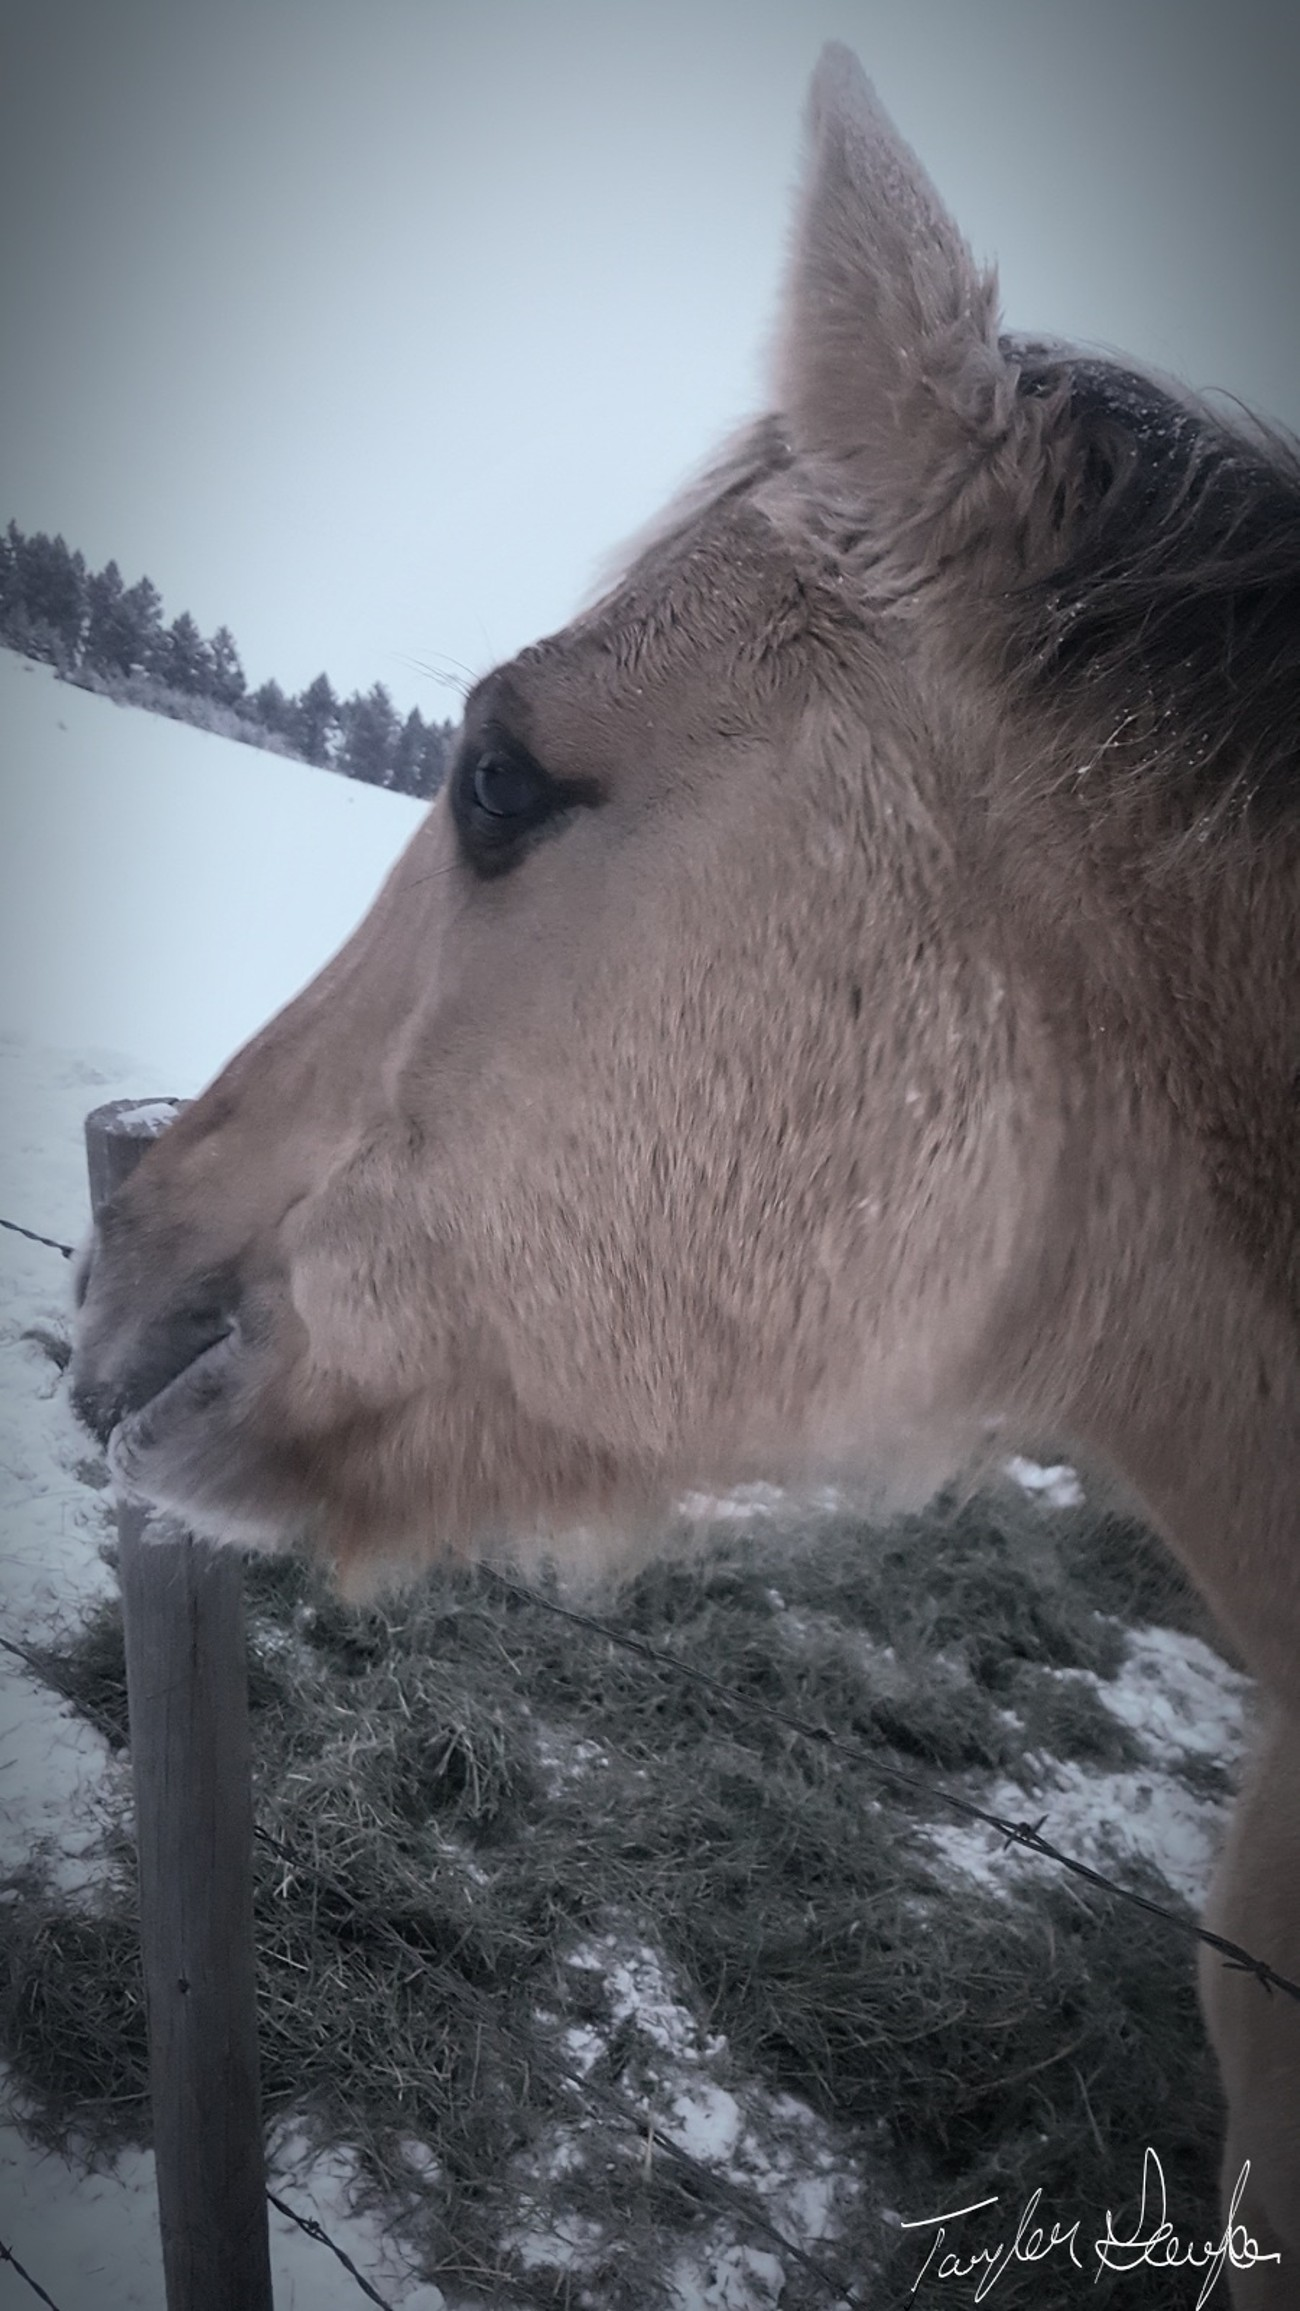 My pony greeting me with love. As Montana has a long snowy season this year, her coat keeps her warm.